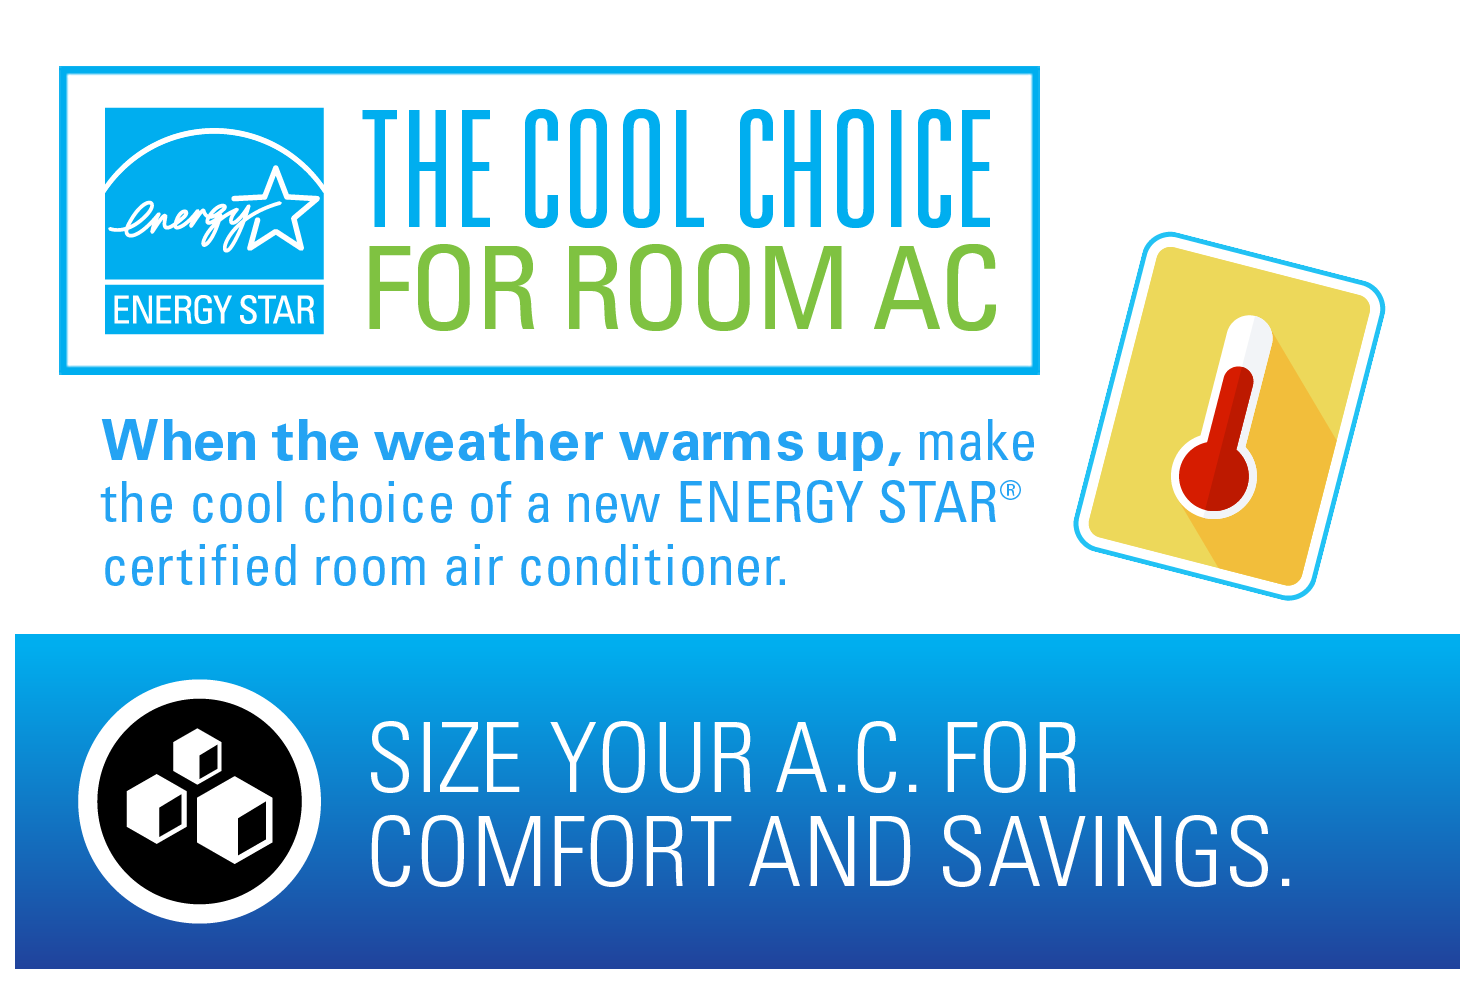 The cool choice for room air conditioners (AC).